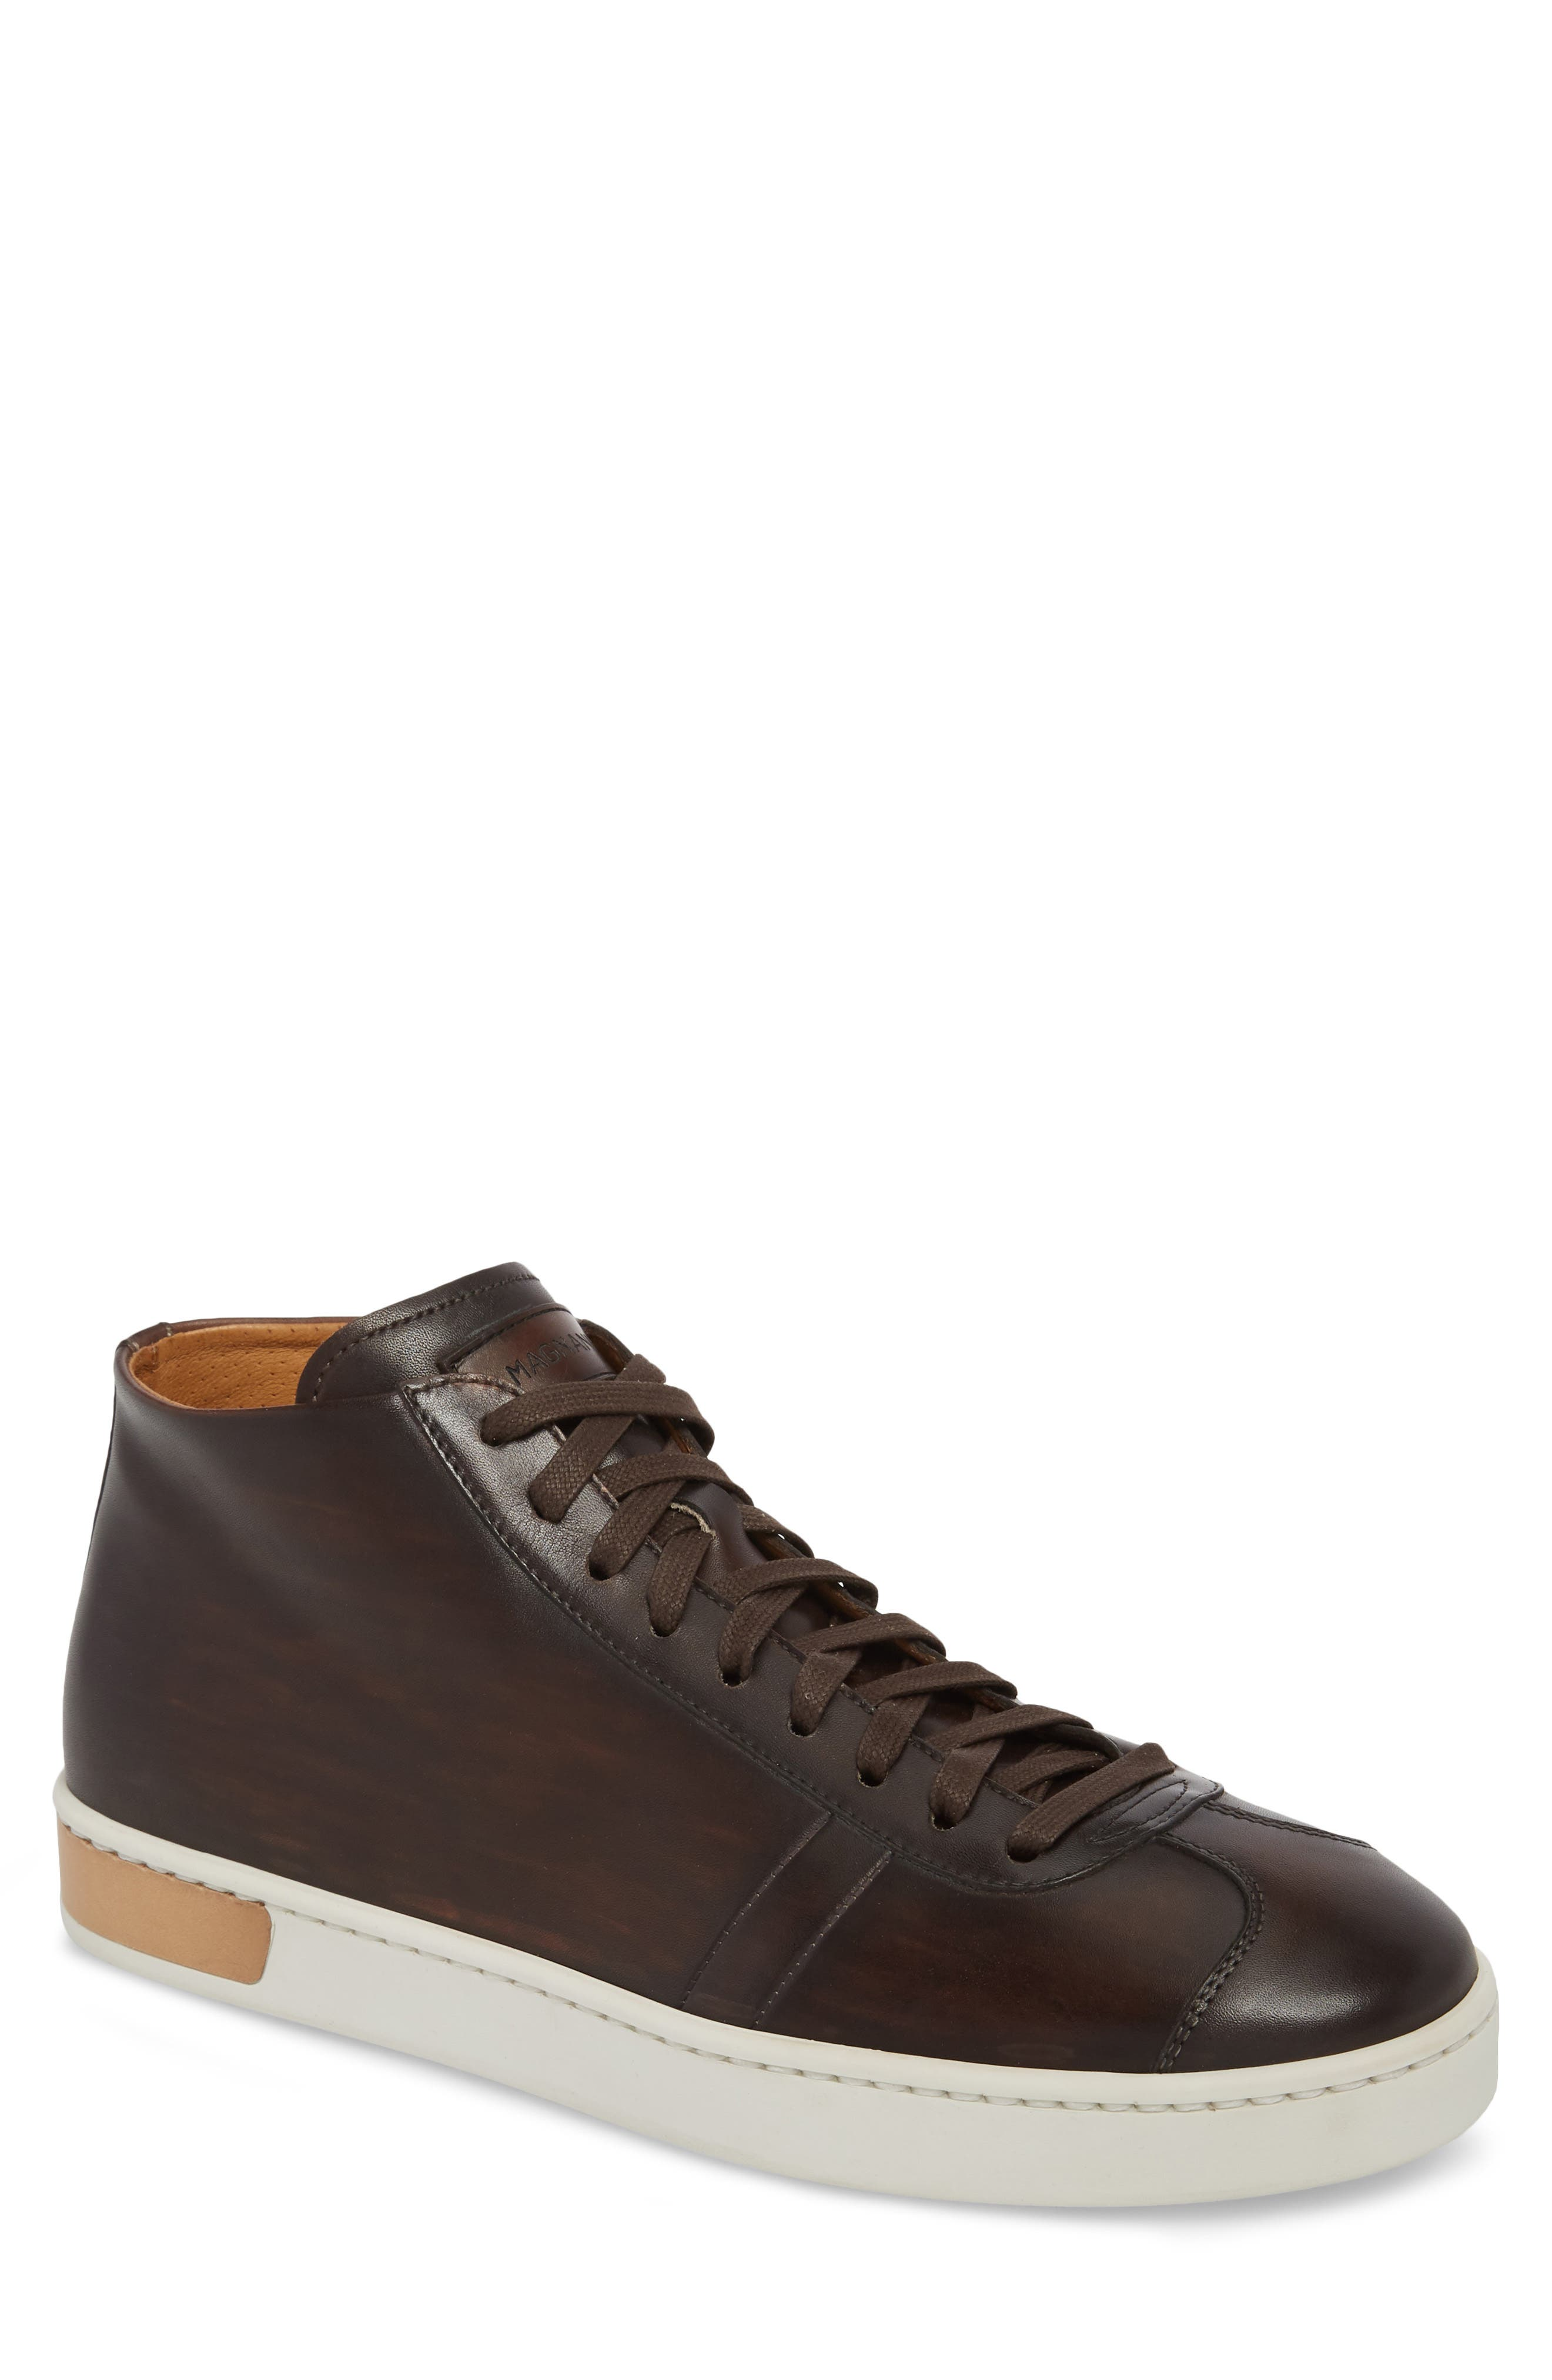 Gunner Mid Top Sneaker,                         Main,                         color, BROWN LEATHER